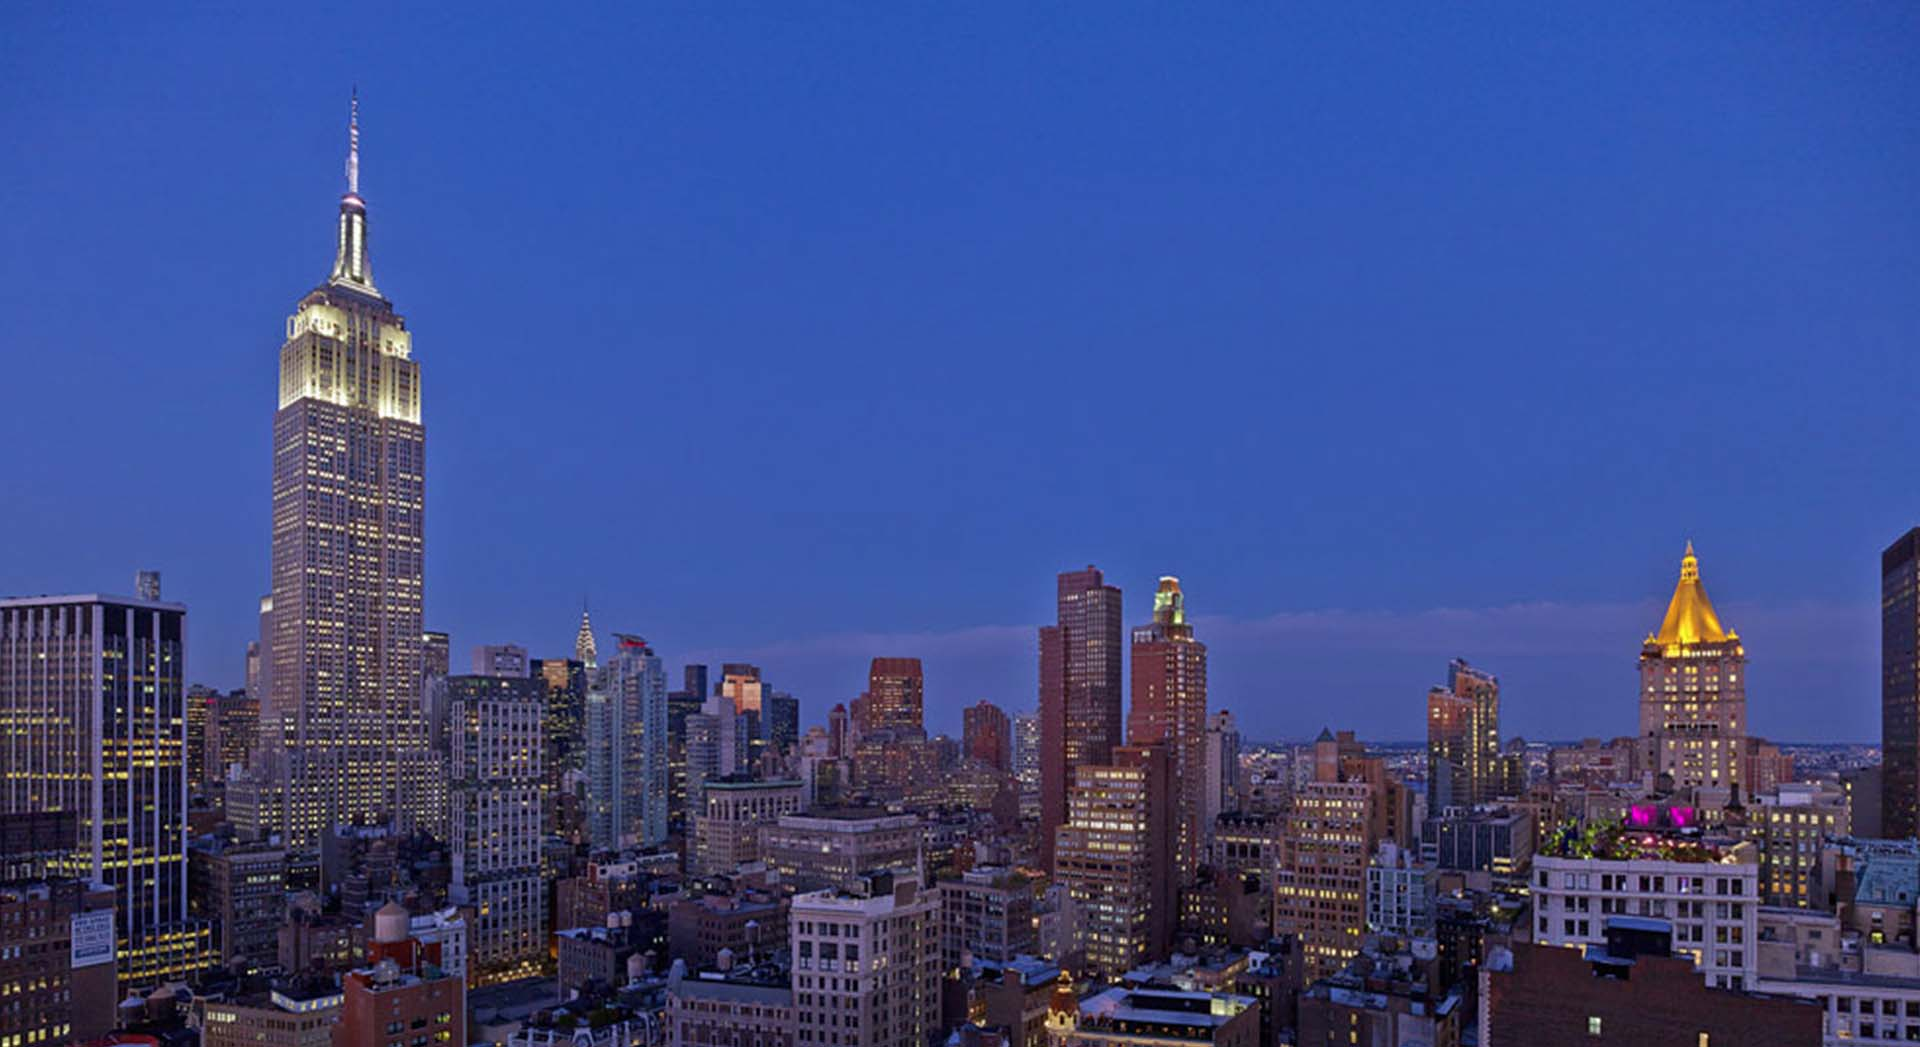 View of the manhattan skyline at dusk with the empire state building illuminated in white